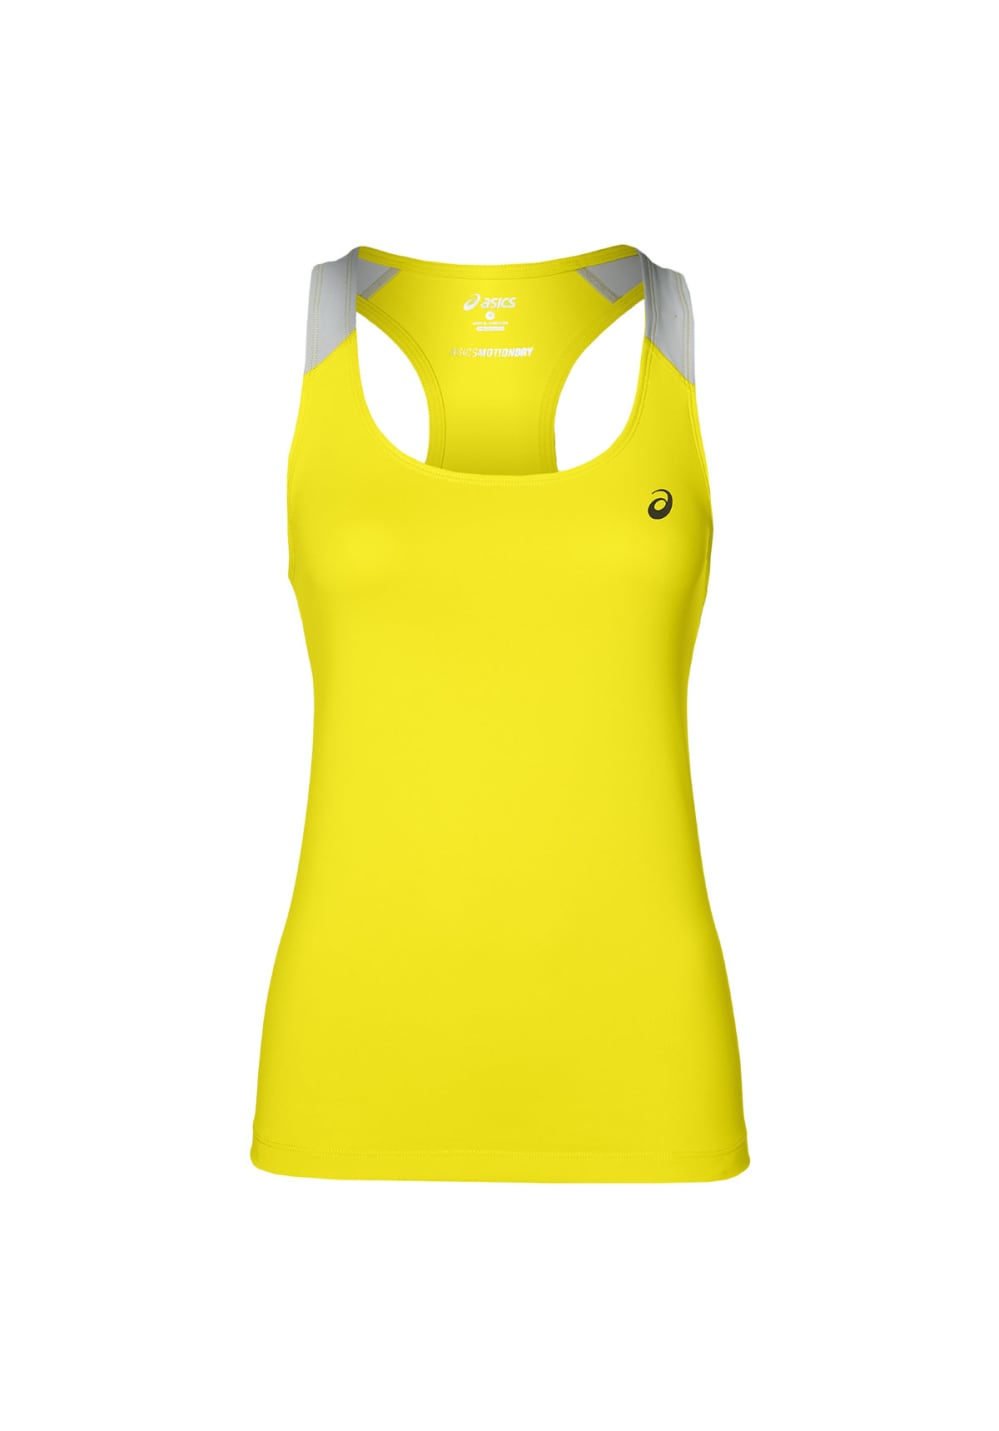 4e5d8ae1649 ASICS Fitted Tank - Running tops for Women - Yellow